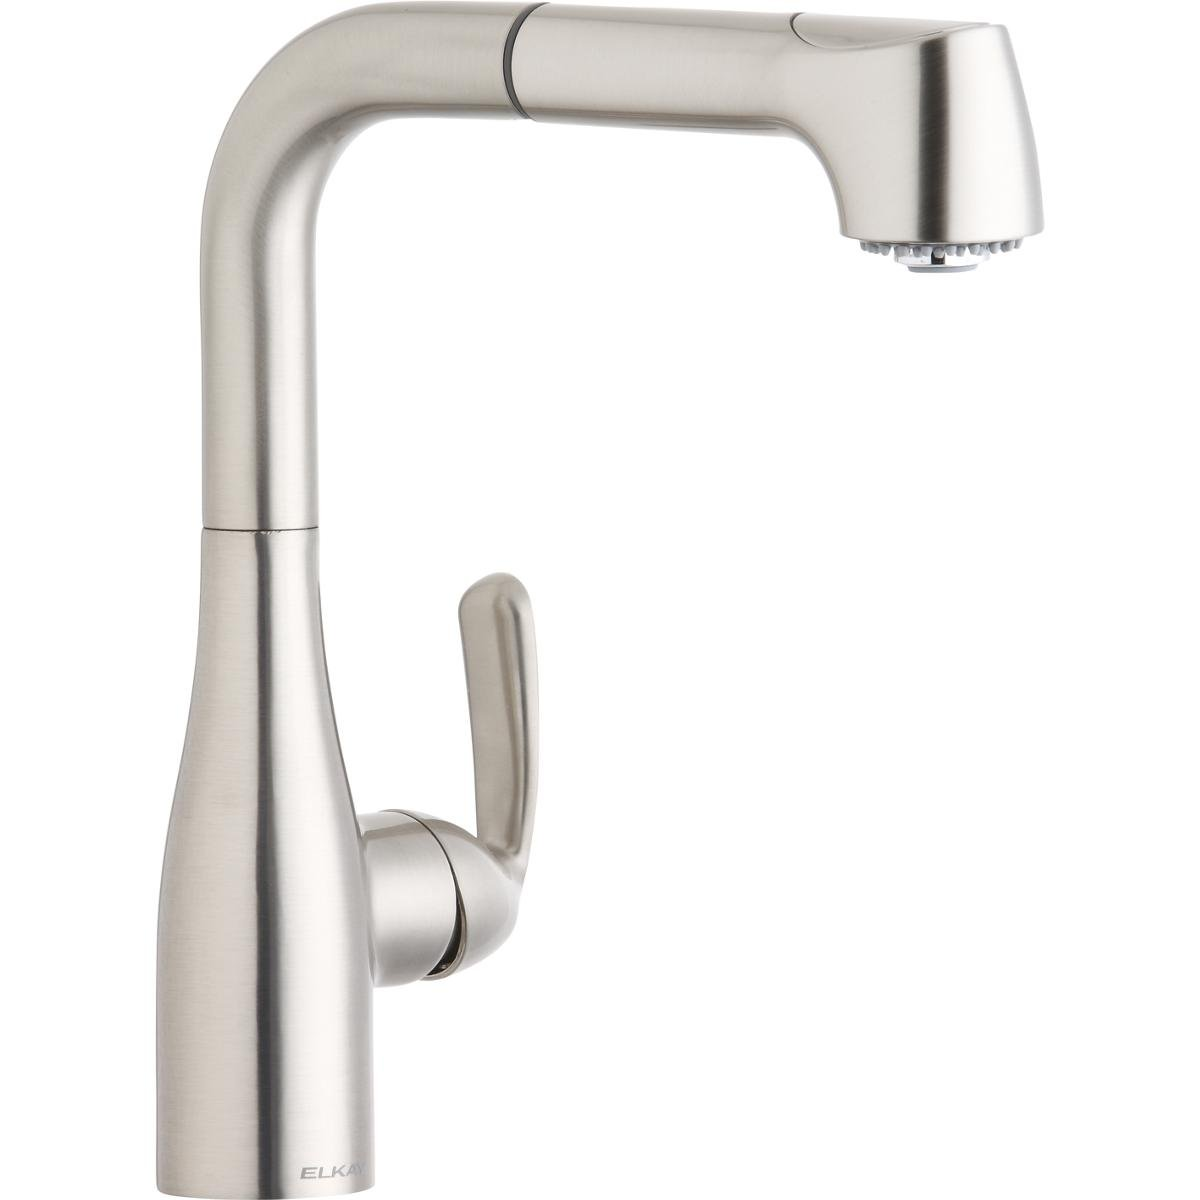 Elkay LKGT2042NK Gourmet Brushed Nickel Single Lever Pull-out Spray Bar Faucet